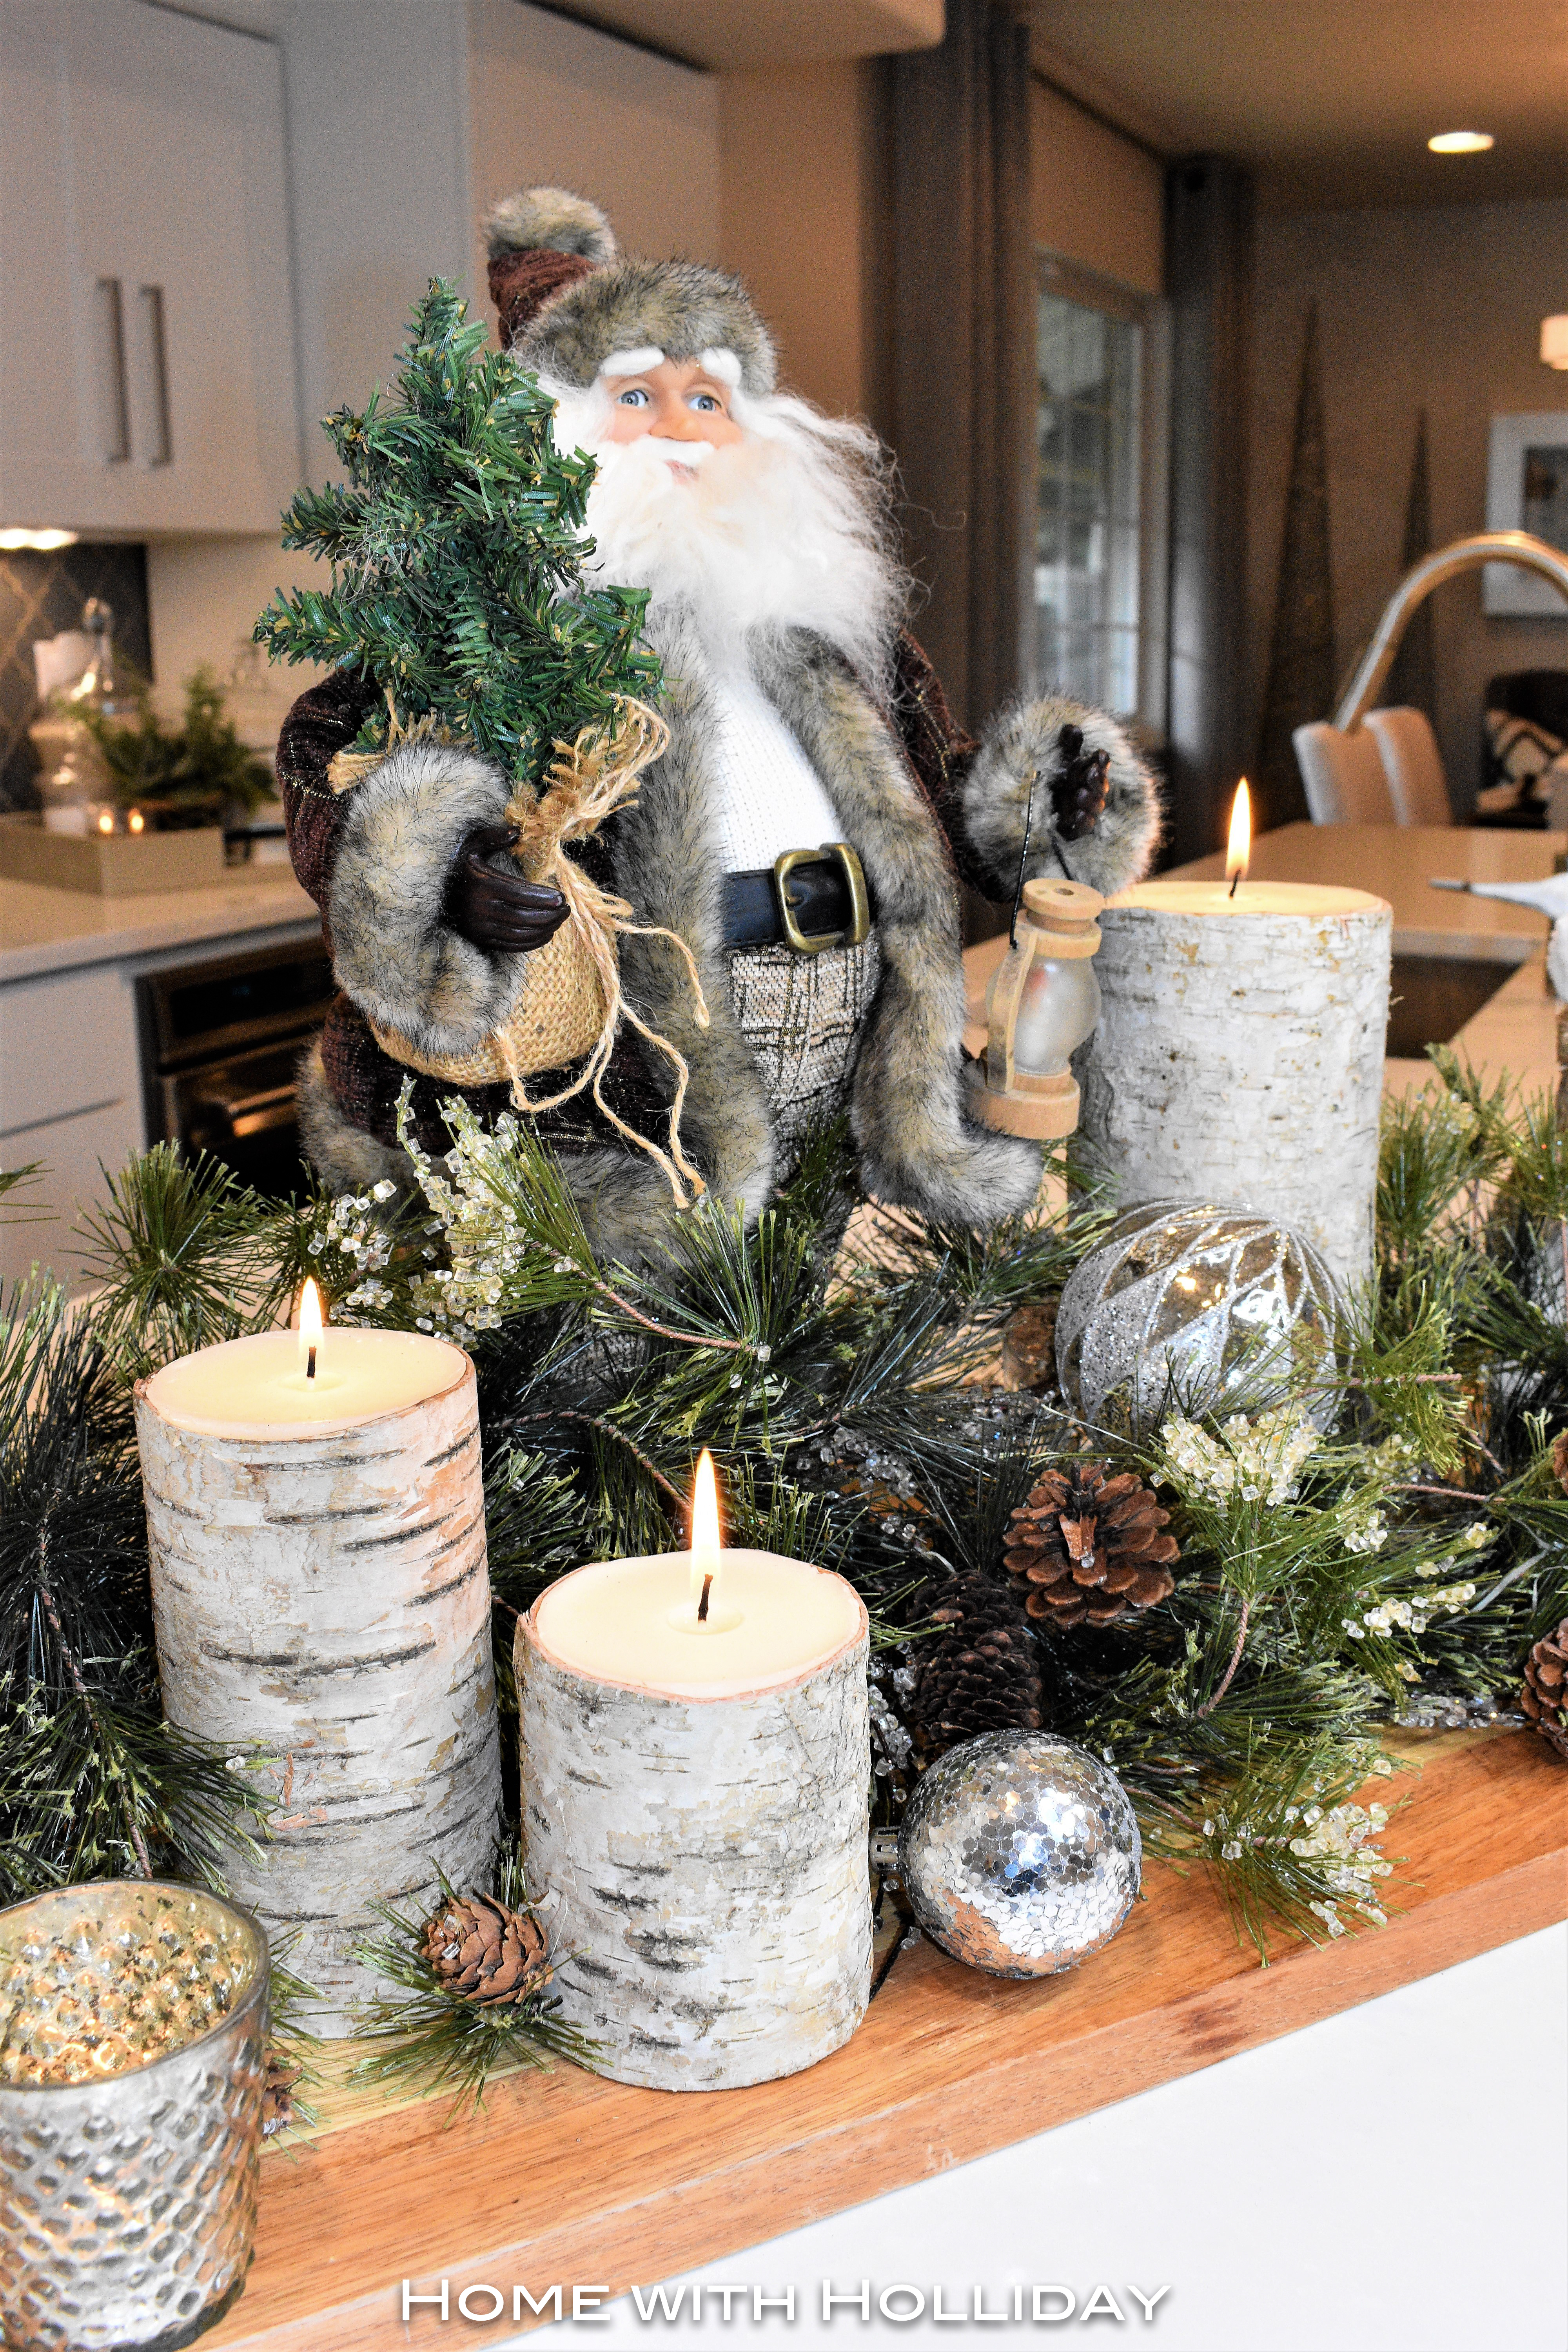 Rustic Winter Christmas Centerpiece with Santa